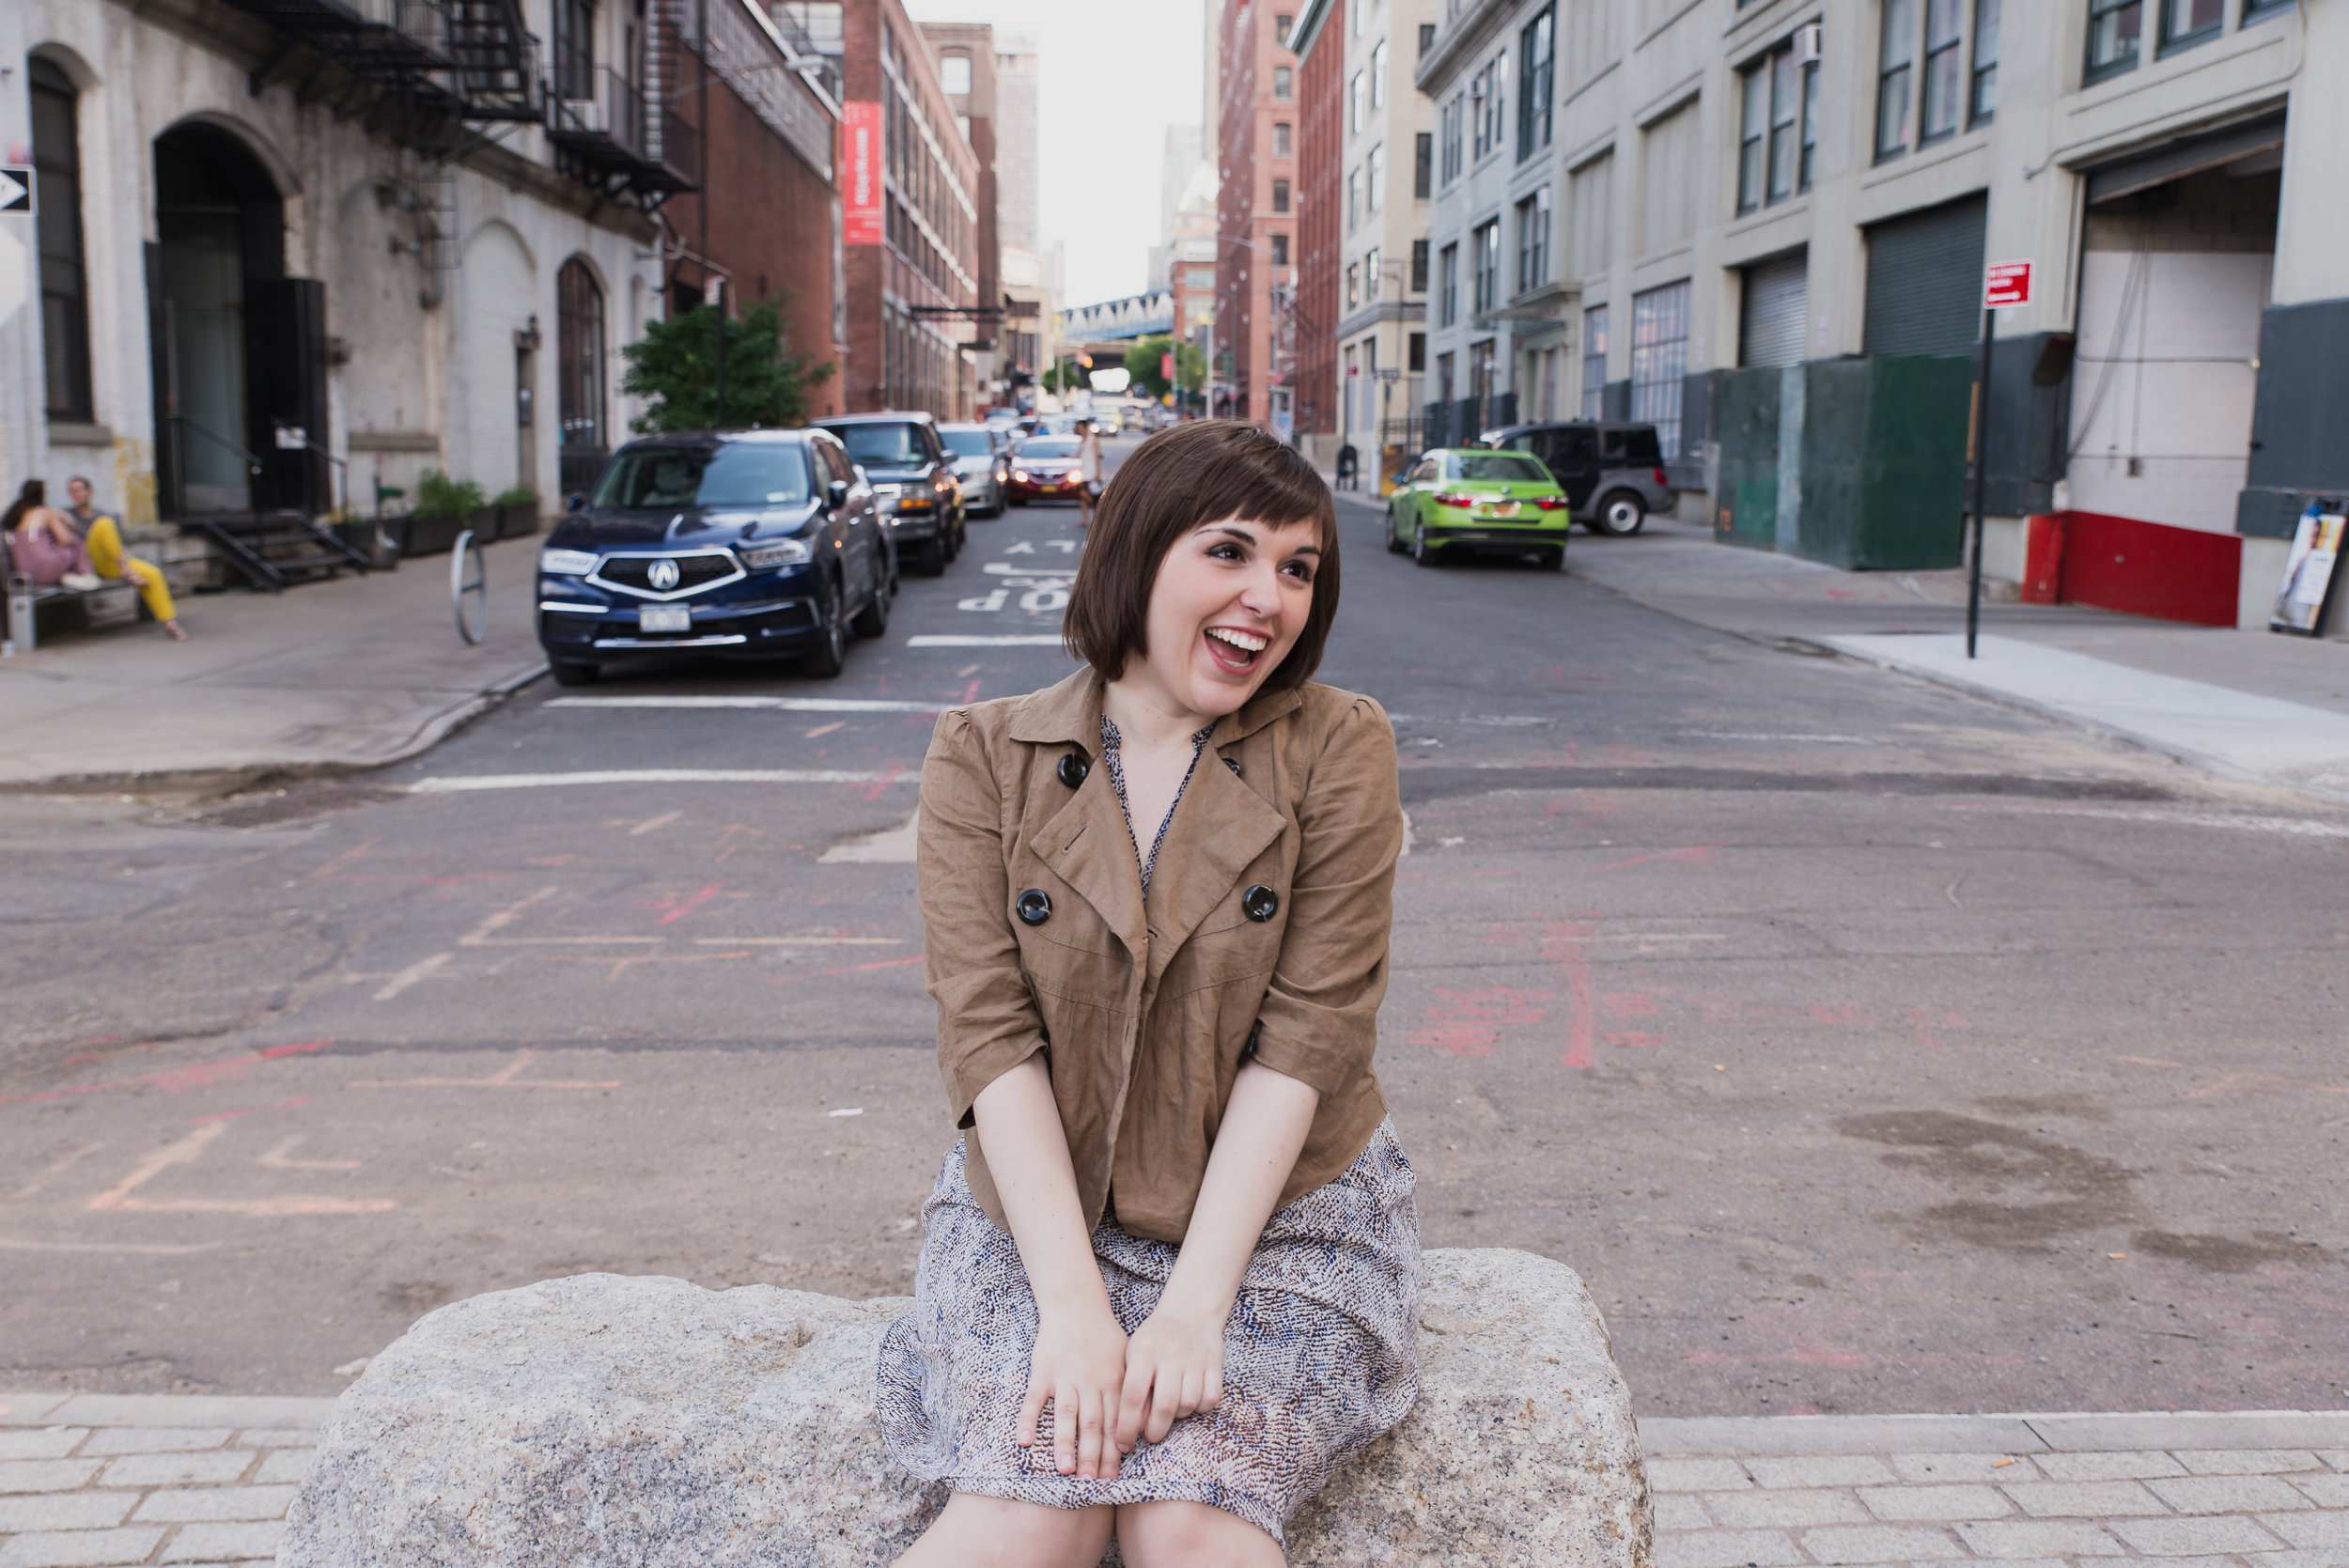 BREE KLAUSER IS... - a New York based Singer, Actress, Voiceover artist, Songwriter and funny lady who happens to be born legally blind. She grew up 30 miles from NYC fell in love with singing and performing through musical theatre and later on the Jazz greats of the 40s, 50s, and 50s. She earned her BFA in acting from Brooklyn College. She has spent the past several years being mentored by former Metropolitan Opera singer Francisco Casanova, and has studied with many other coaches and Broadway musical directors. She has worked extensively in New York Theatre and is a member of the Off Broadway company Theatre Breaking Through Barriers. In 2018 Bree started production on her breakout role of